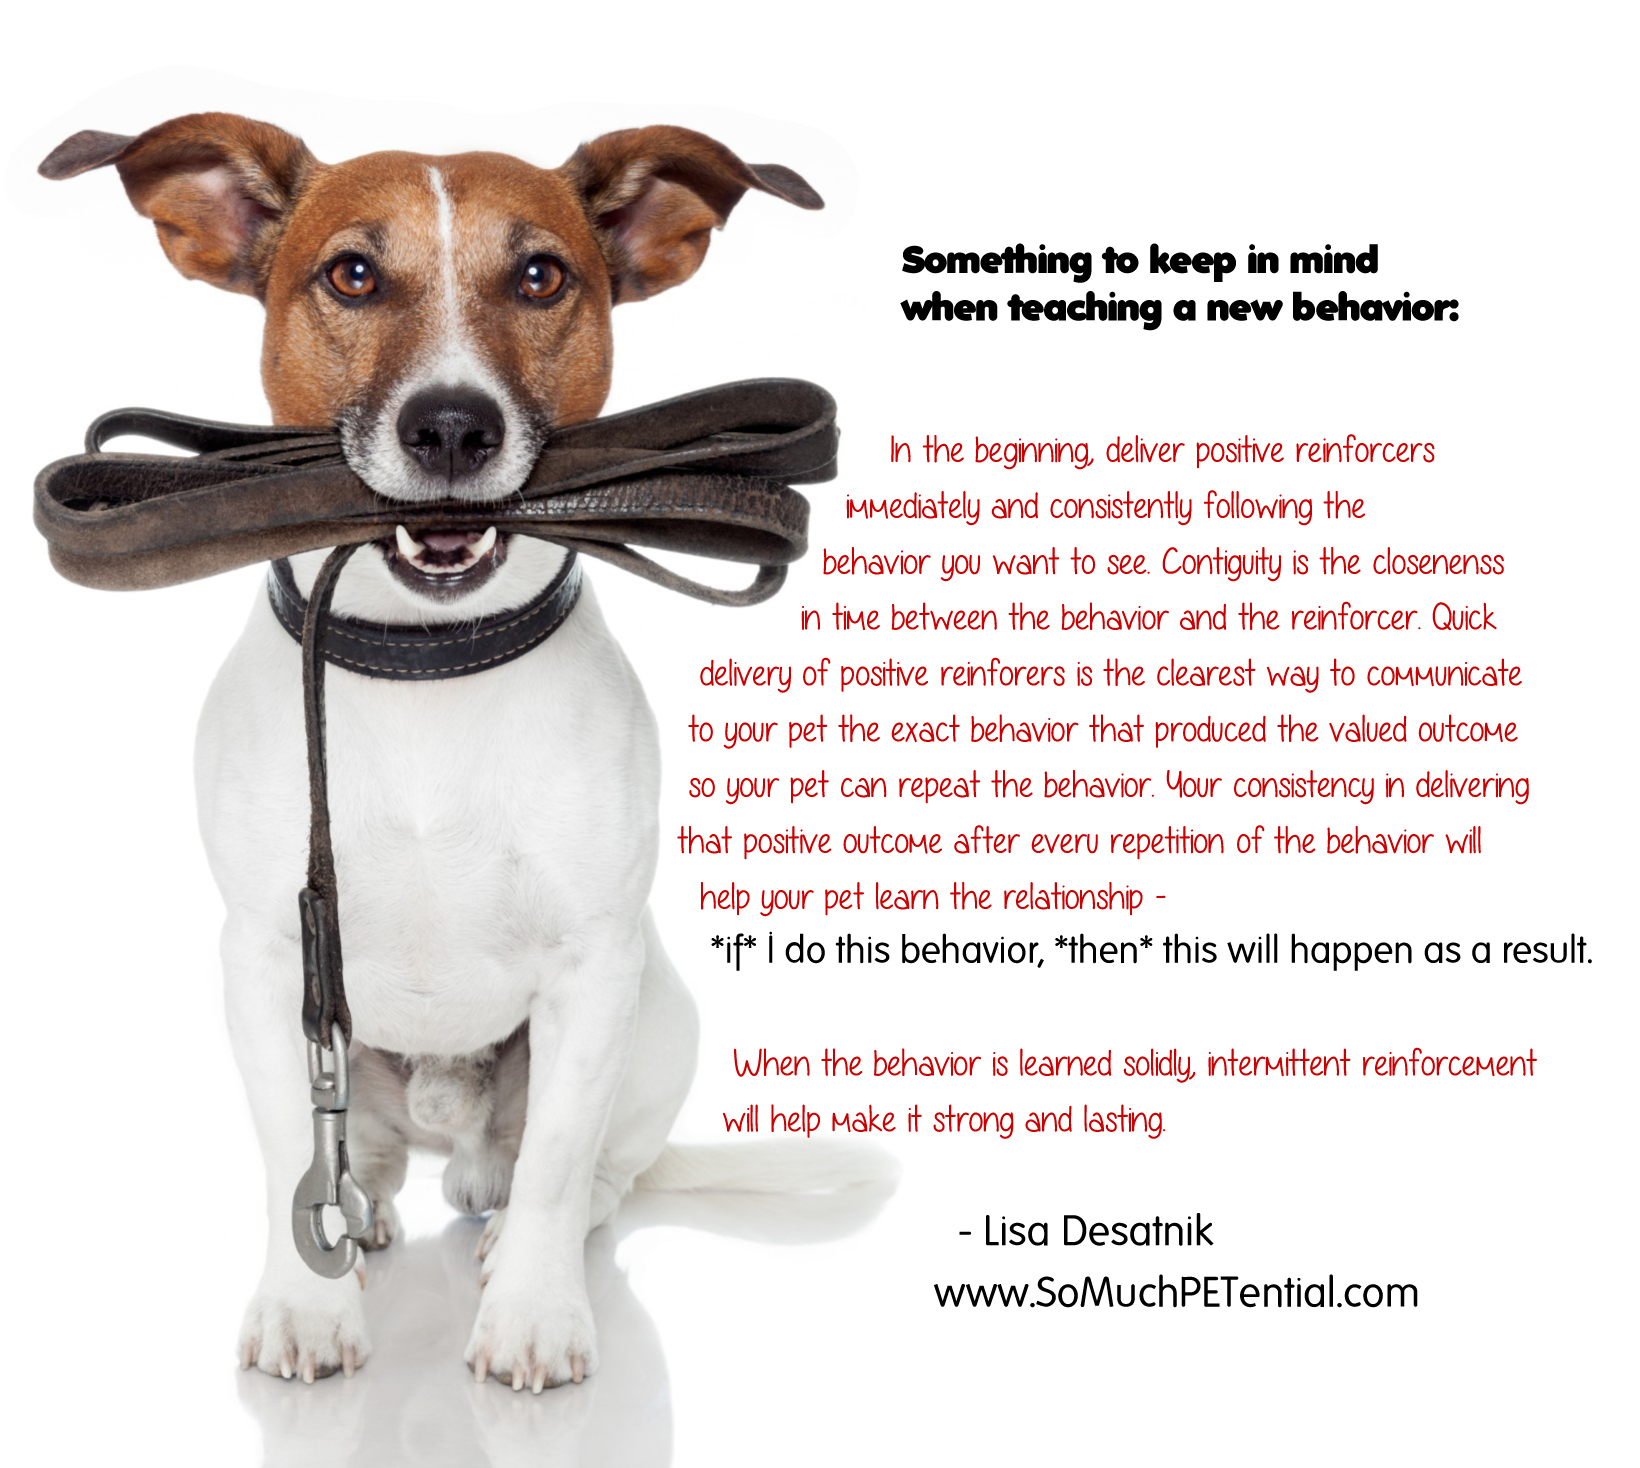 A Pet Training Tip on Reinforcement